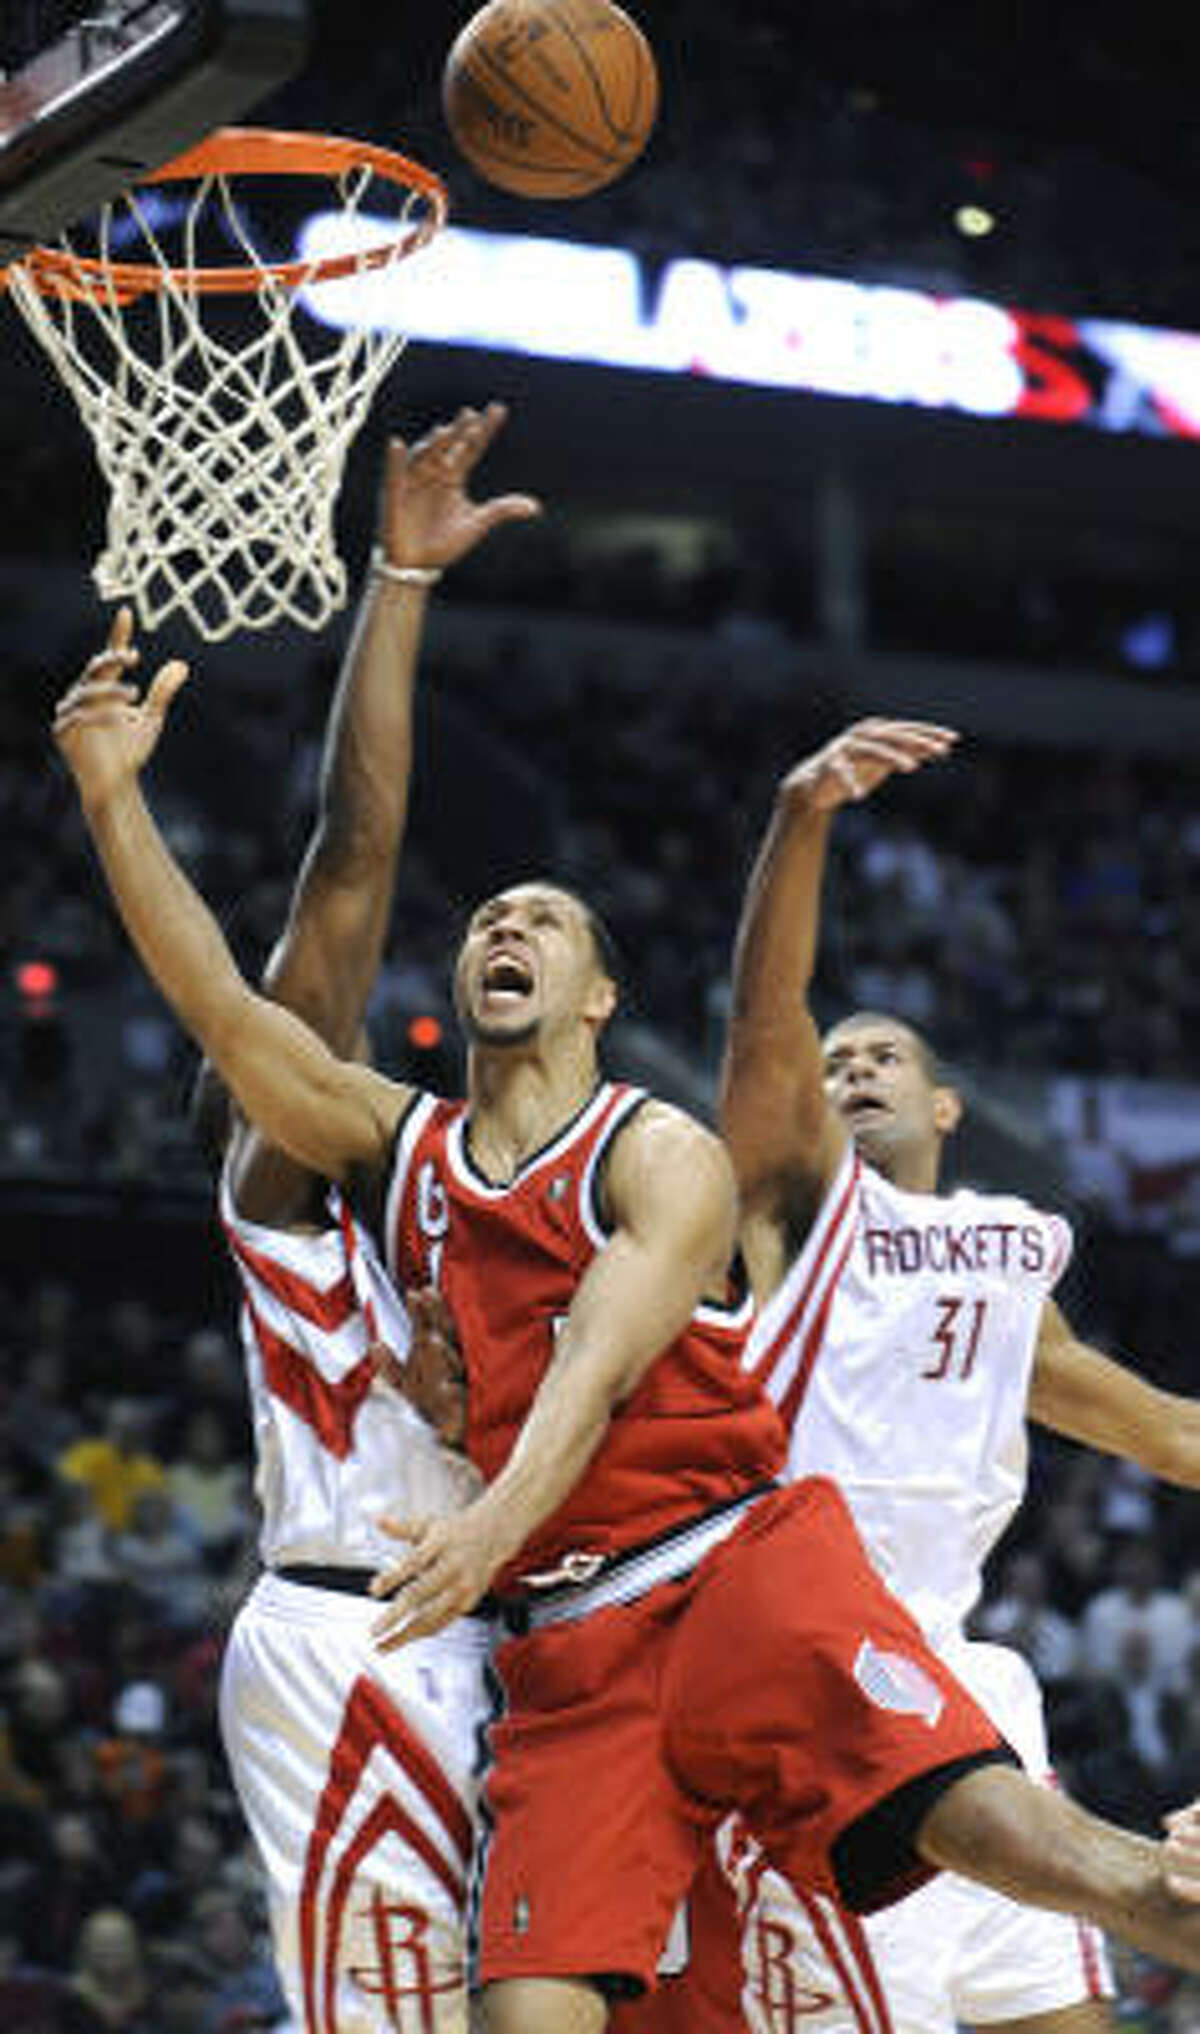 Trail Blazers guard Brandon Roy scores in front of Shane Battier (31) and Carl Landry (14) during the final minutes.